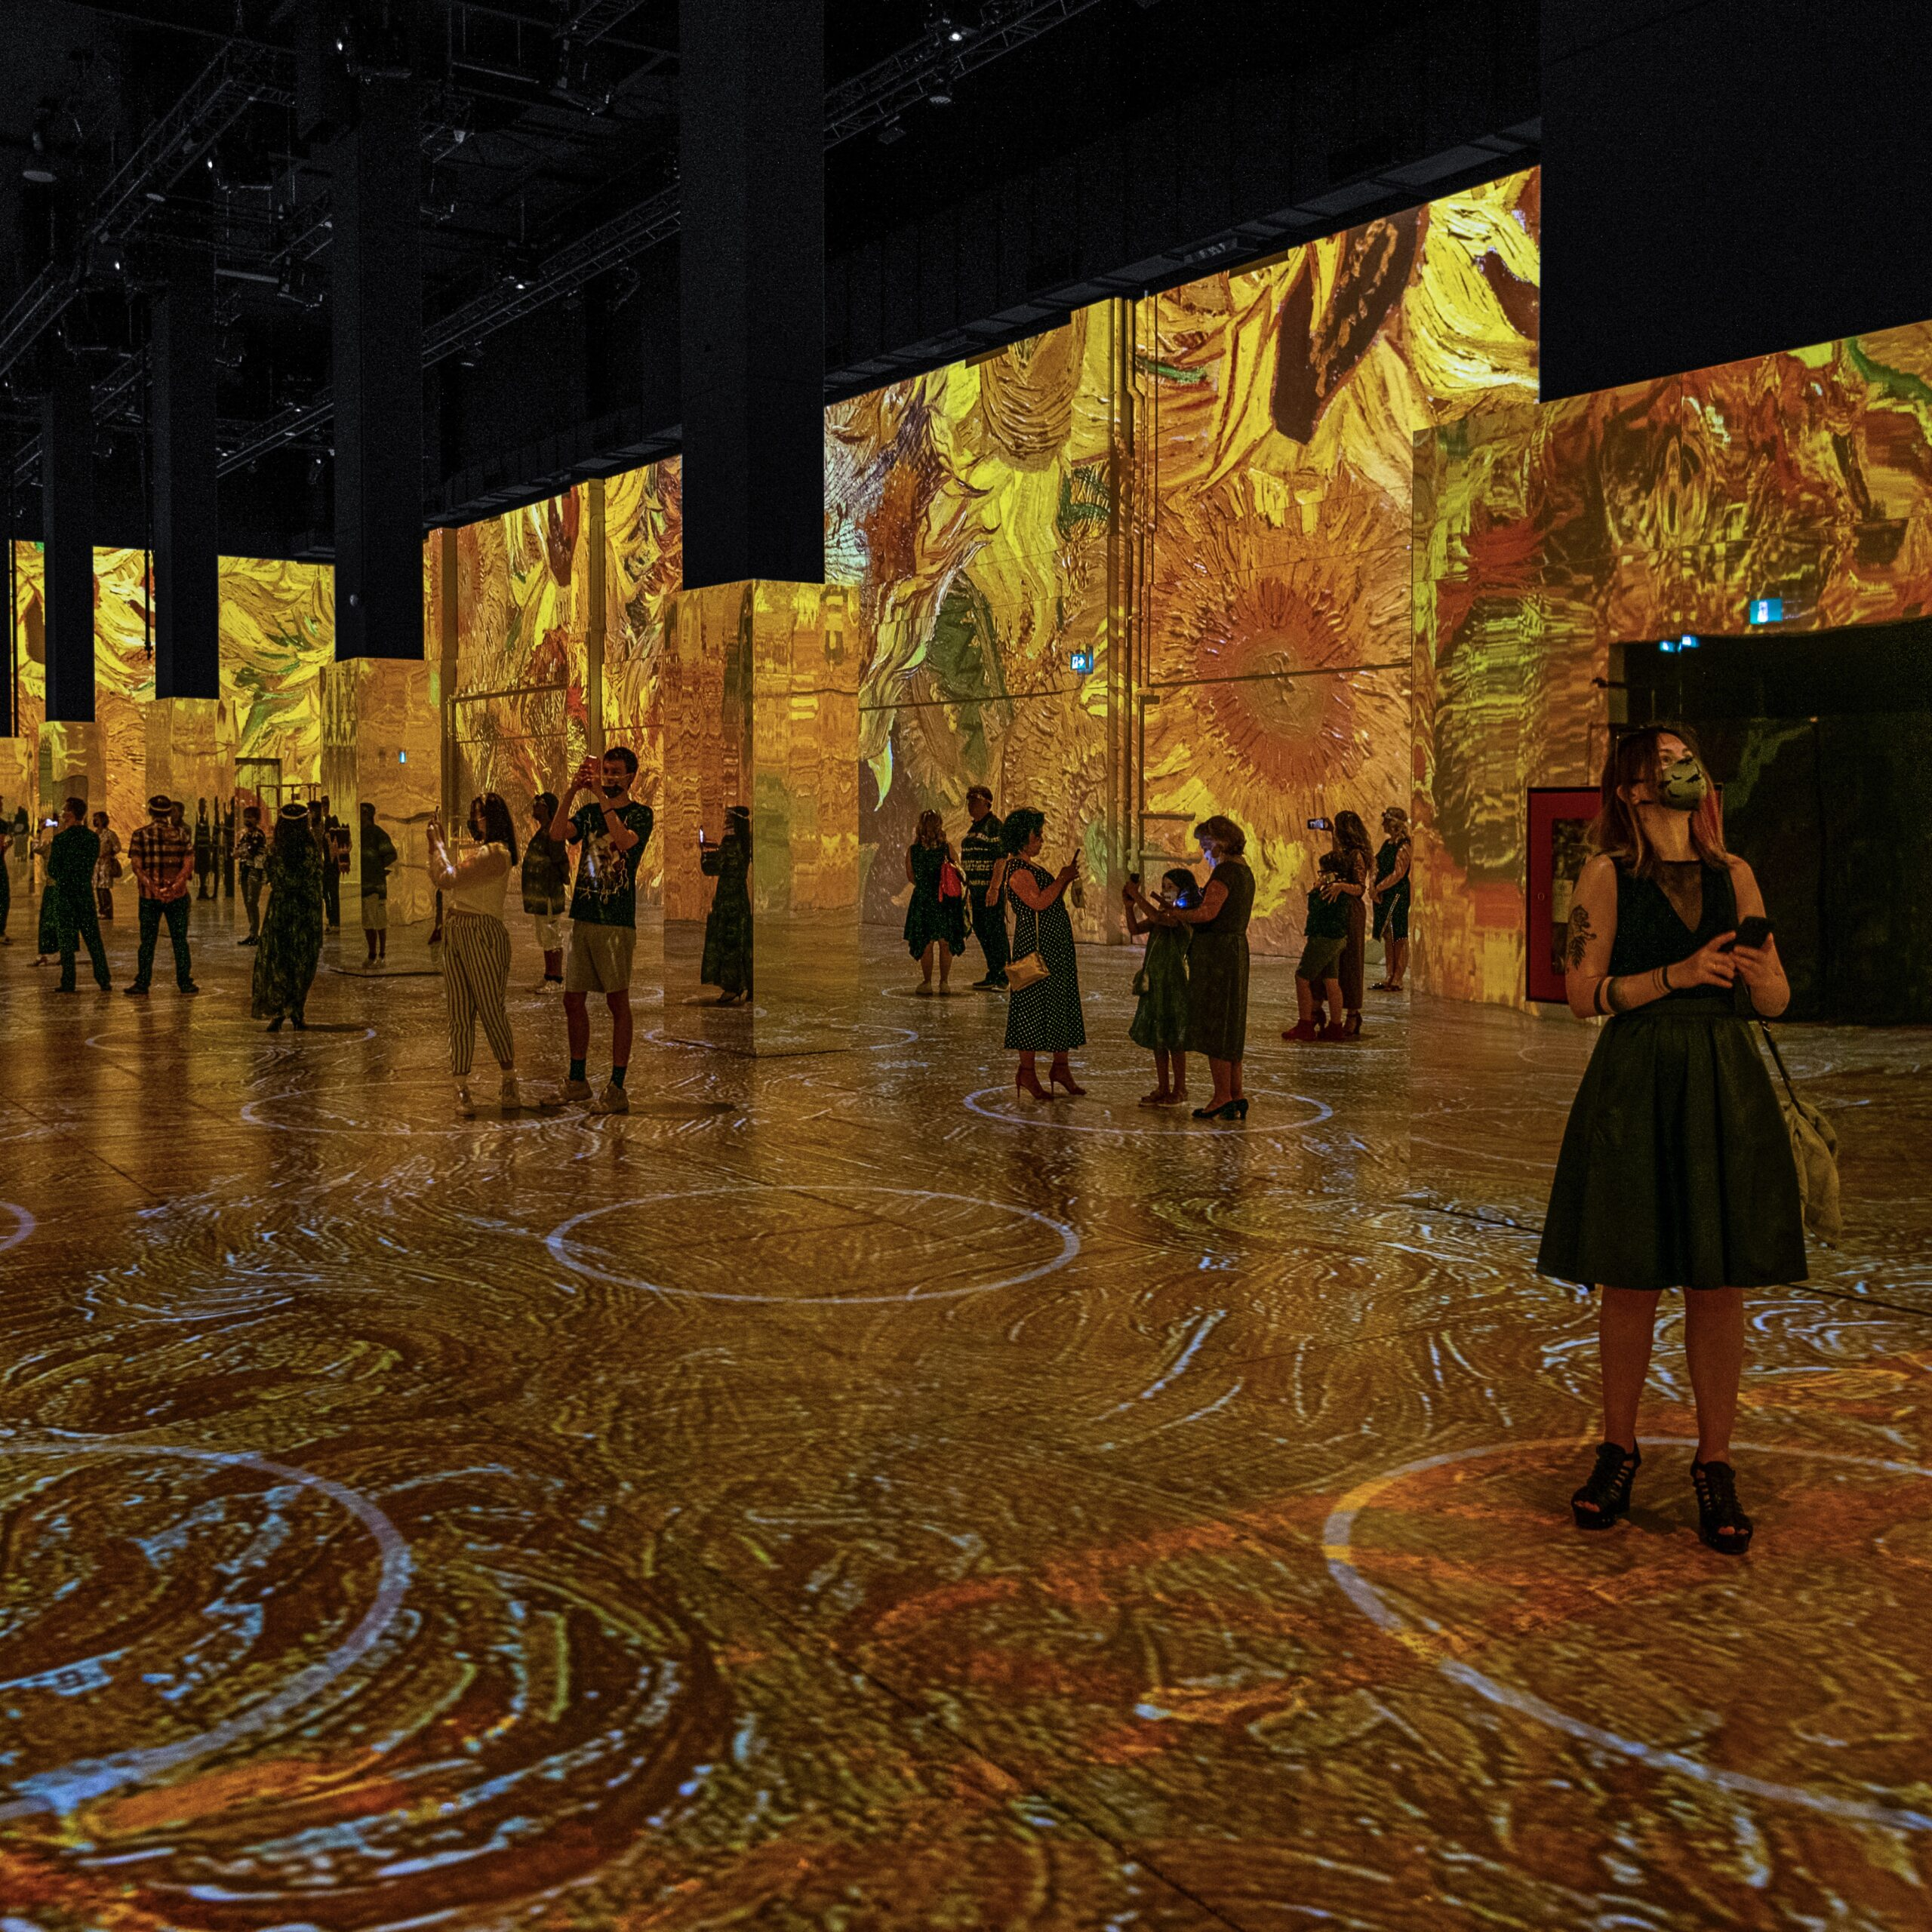 Immersive Van Gogh Exhibit via Carol Fox and Associates Public Relations for use by 360 Magazine